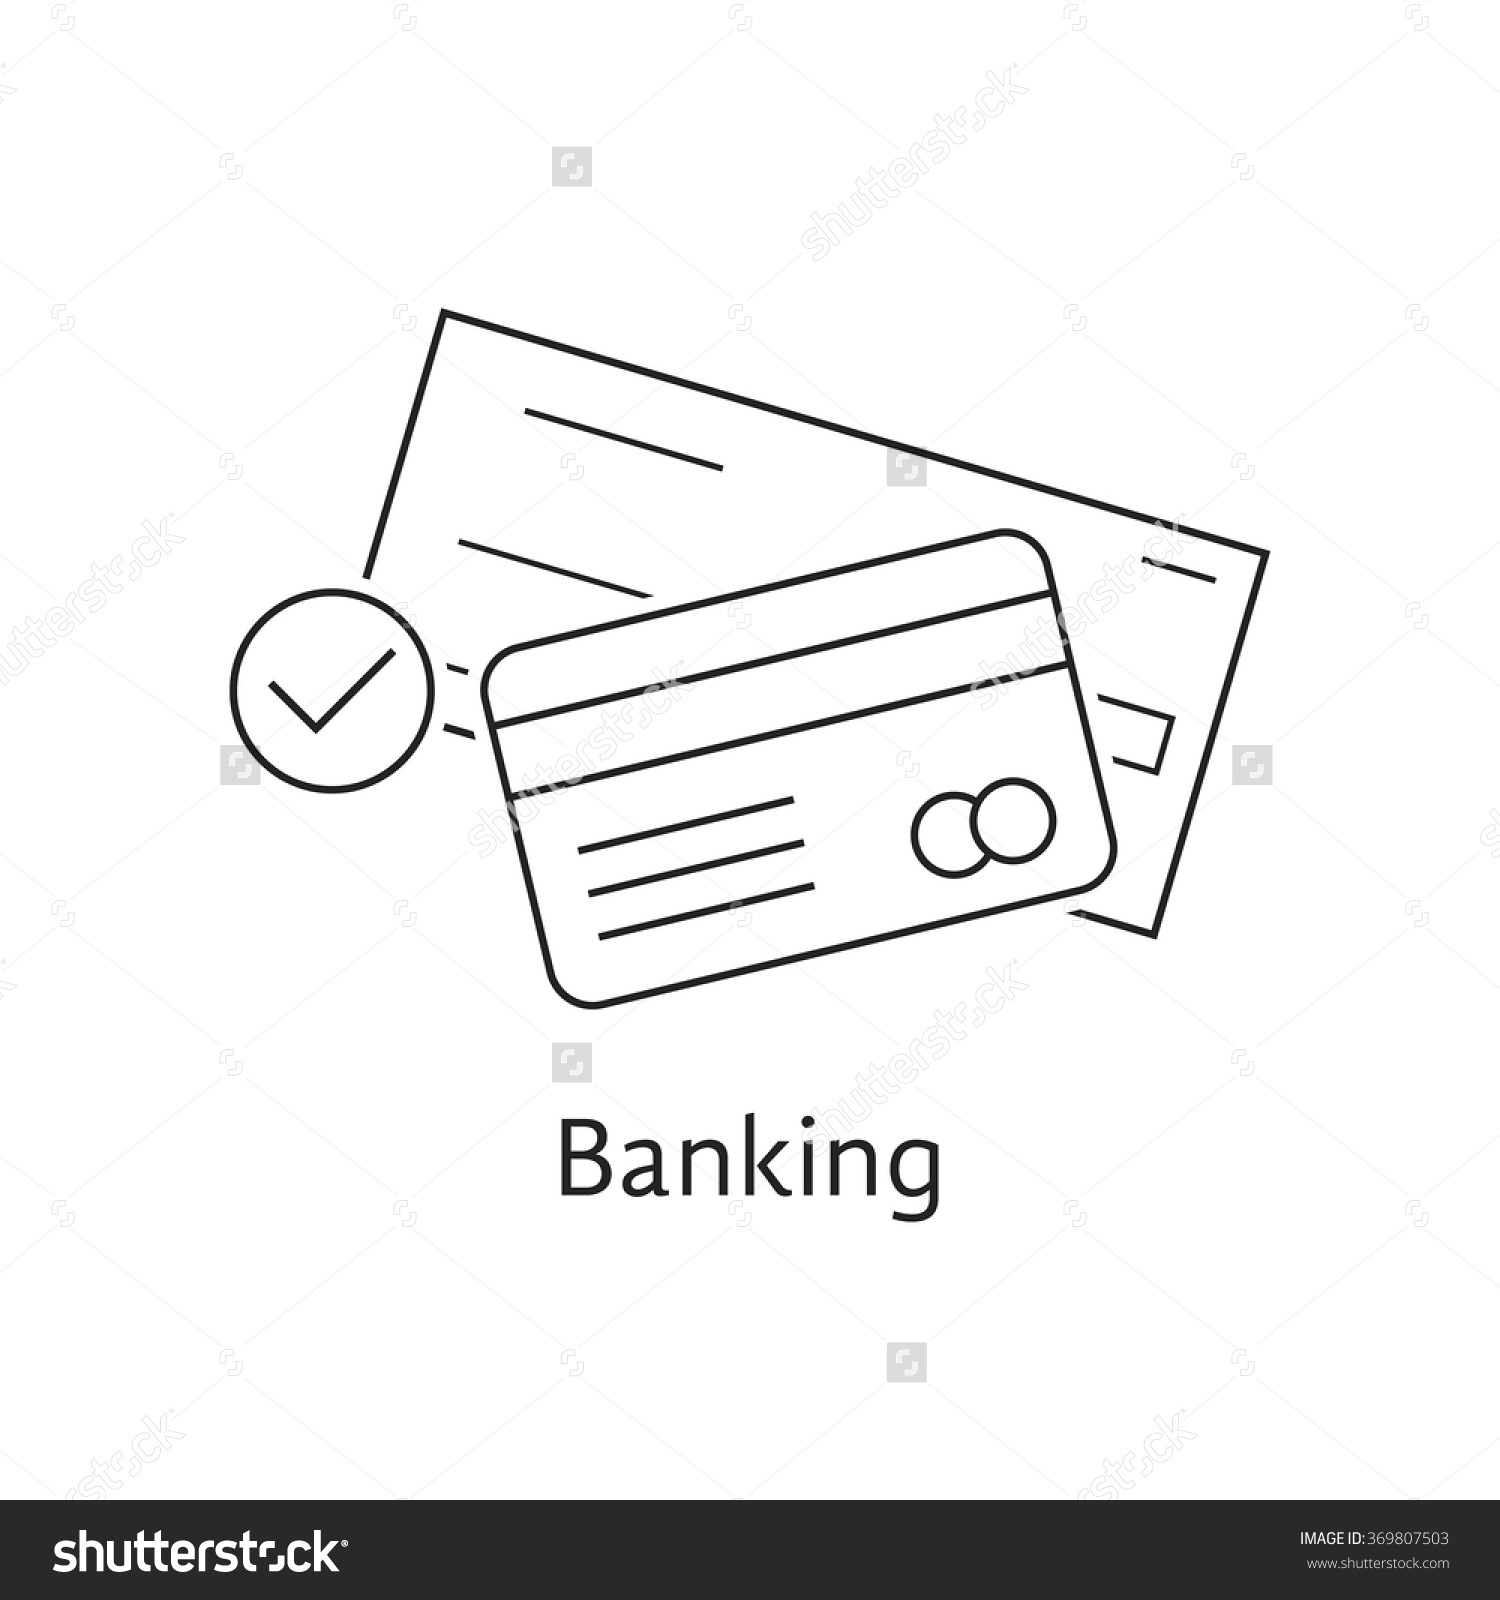 Security pacific bank logo clipart